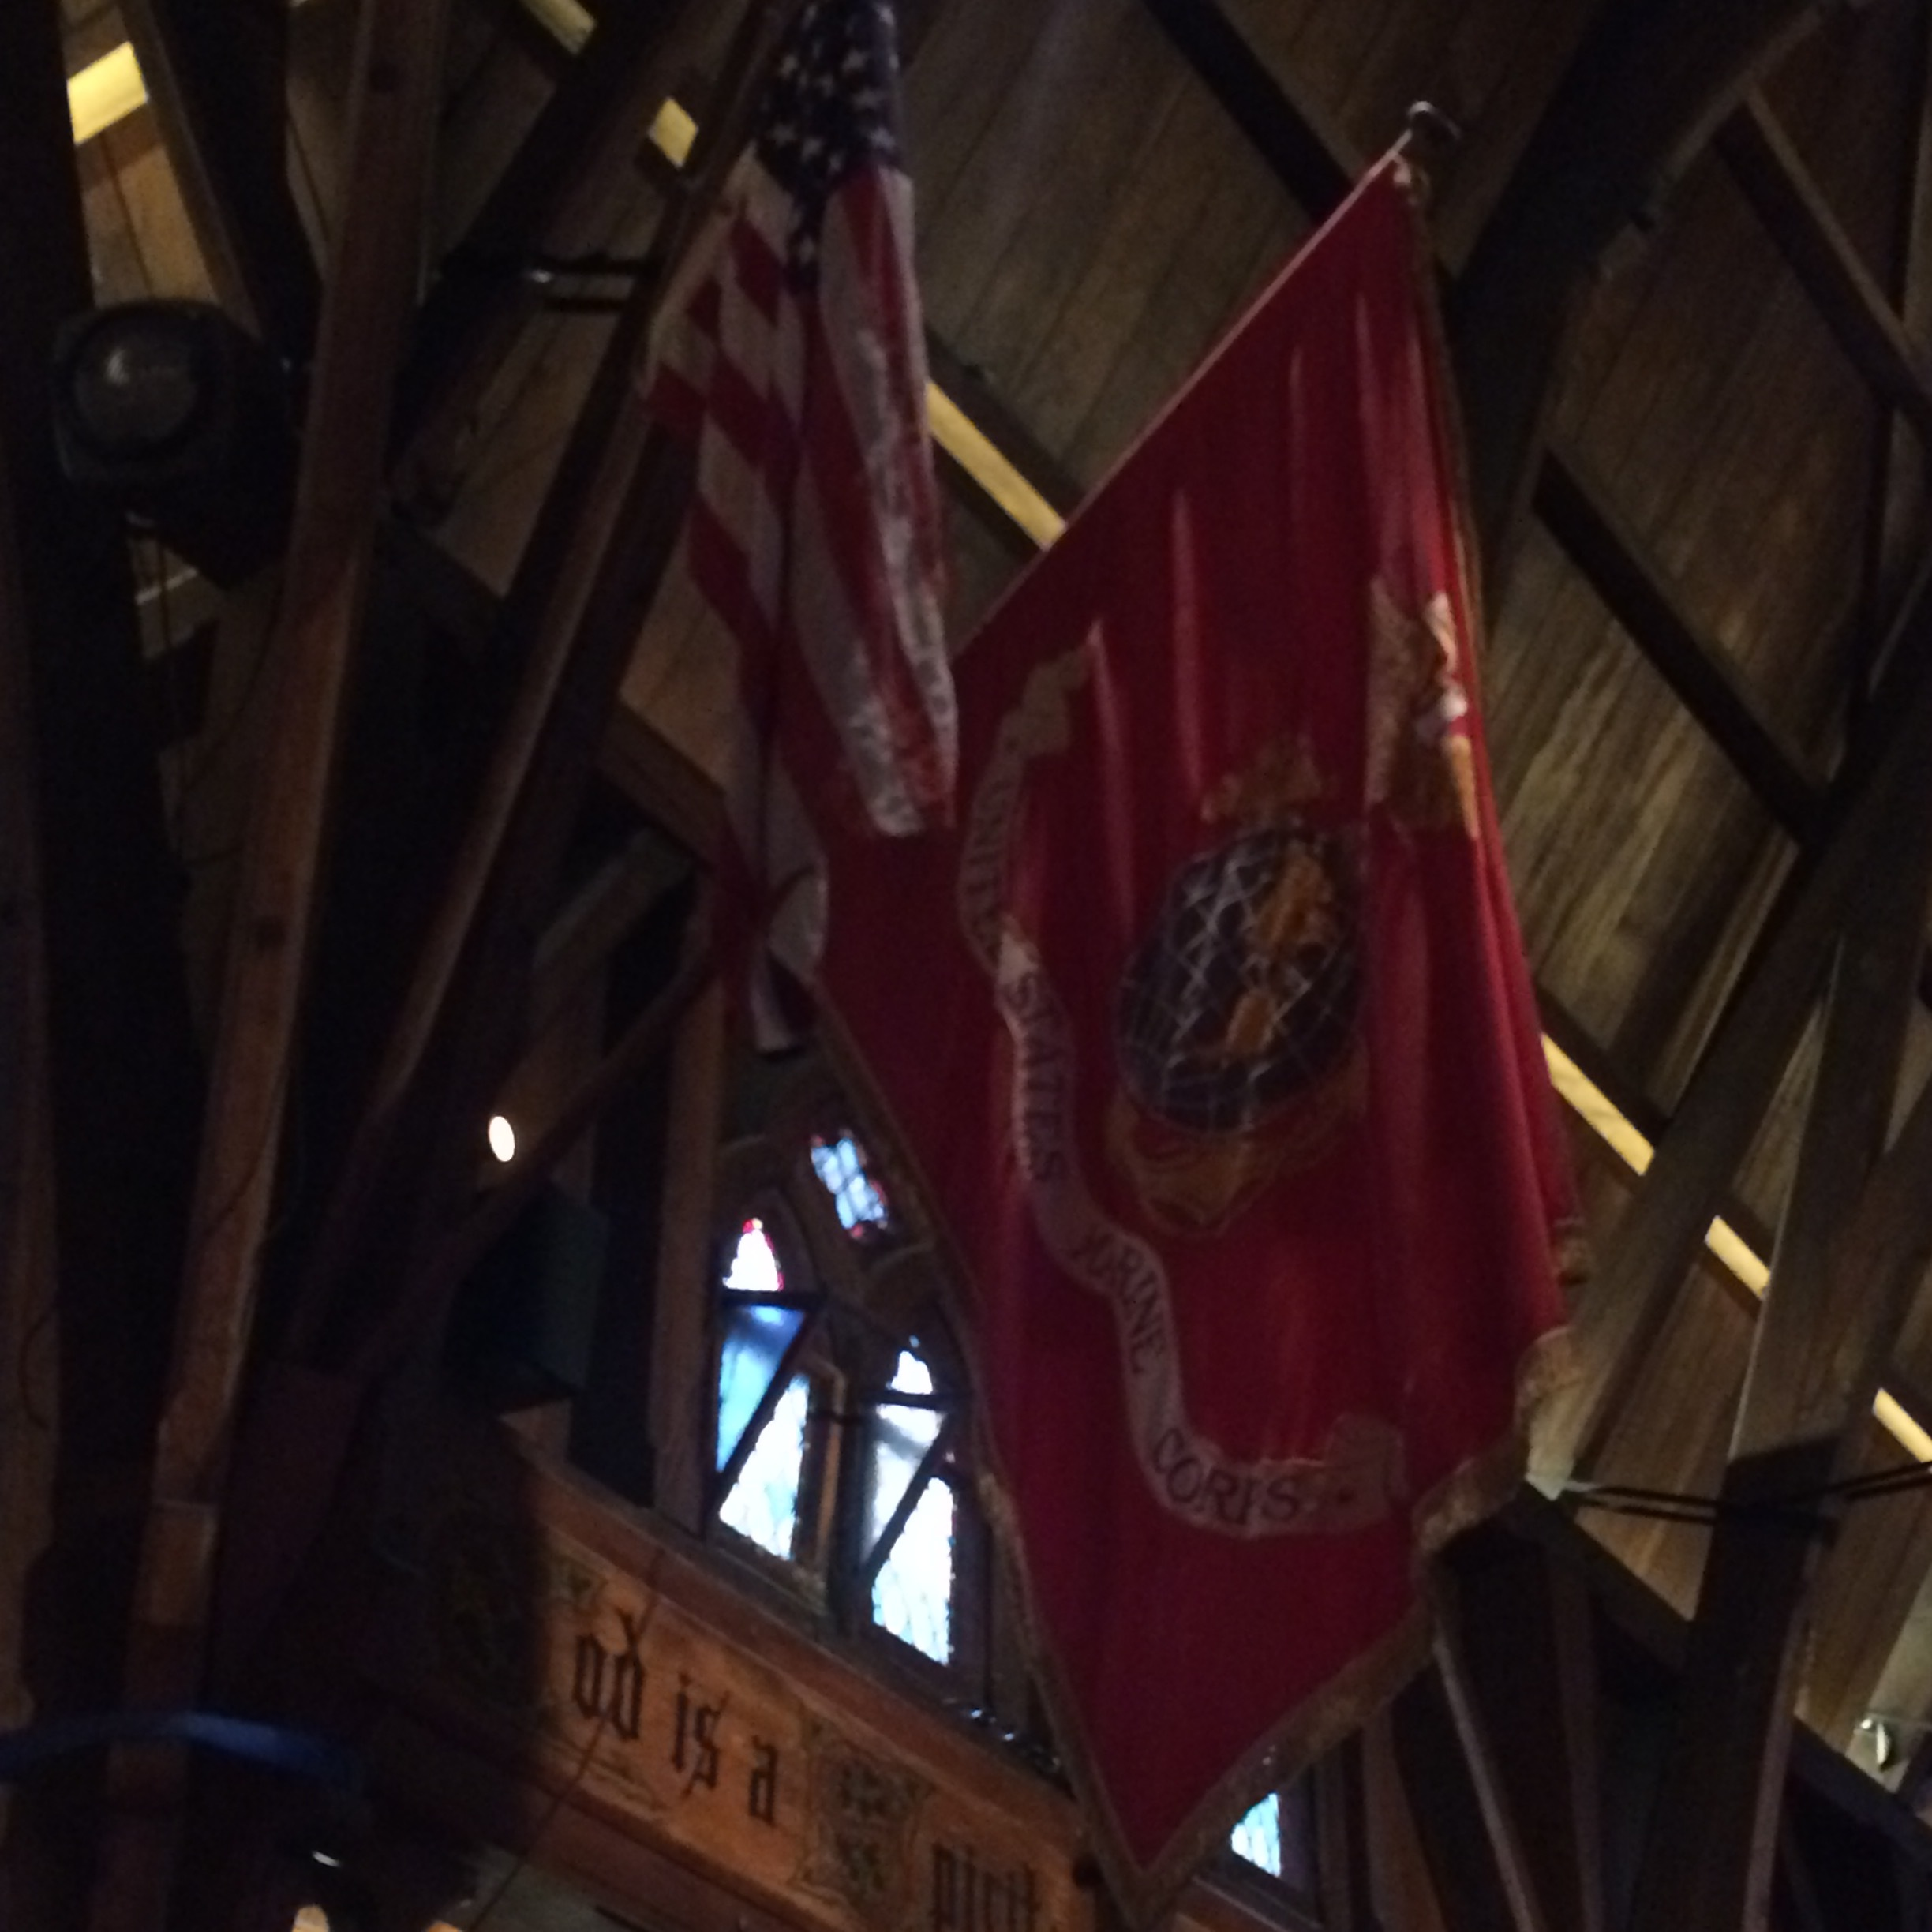 The flags in the church